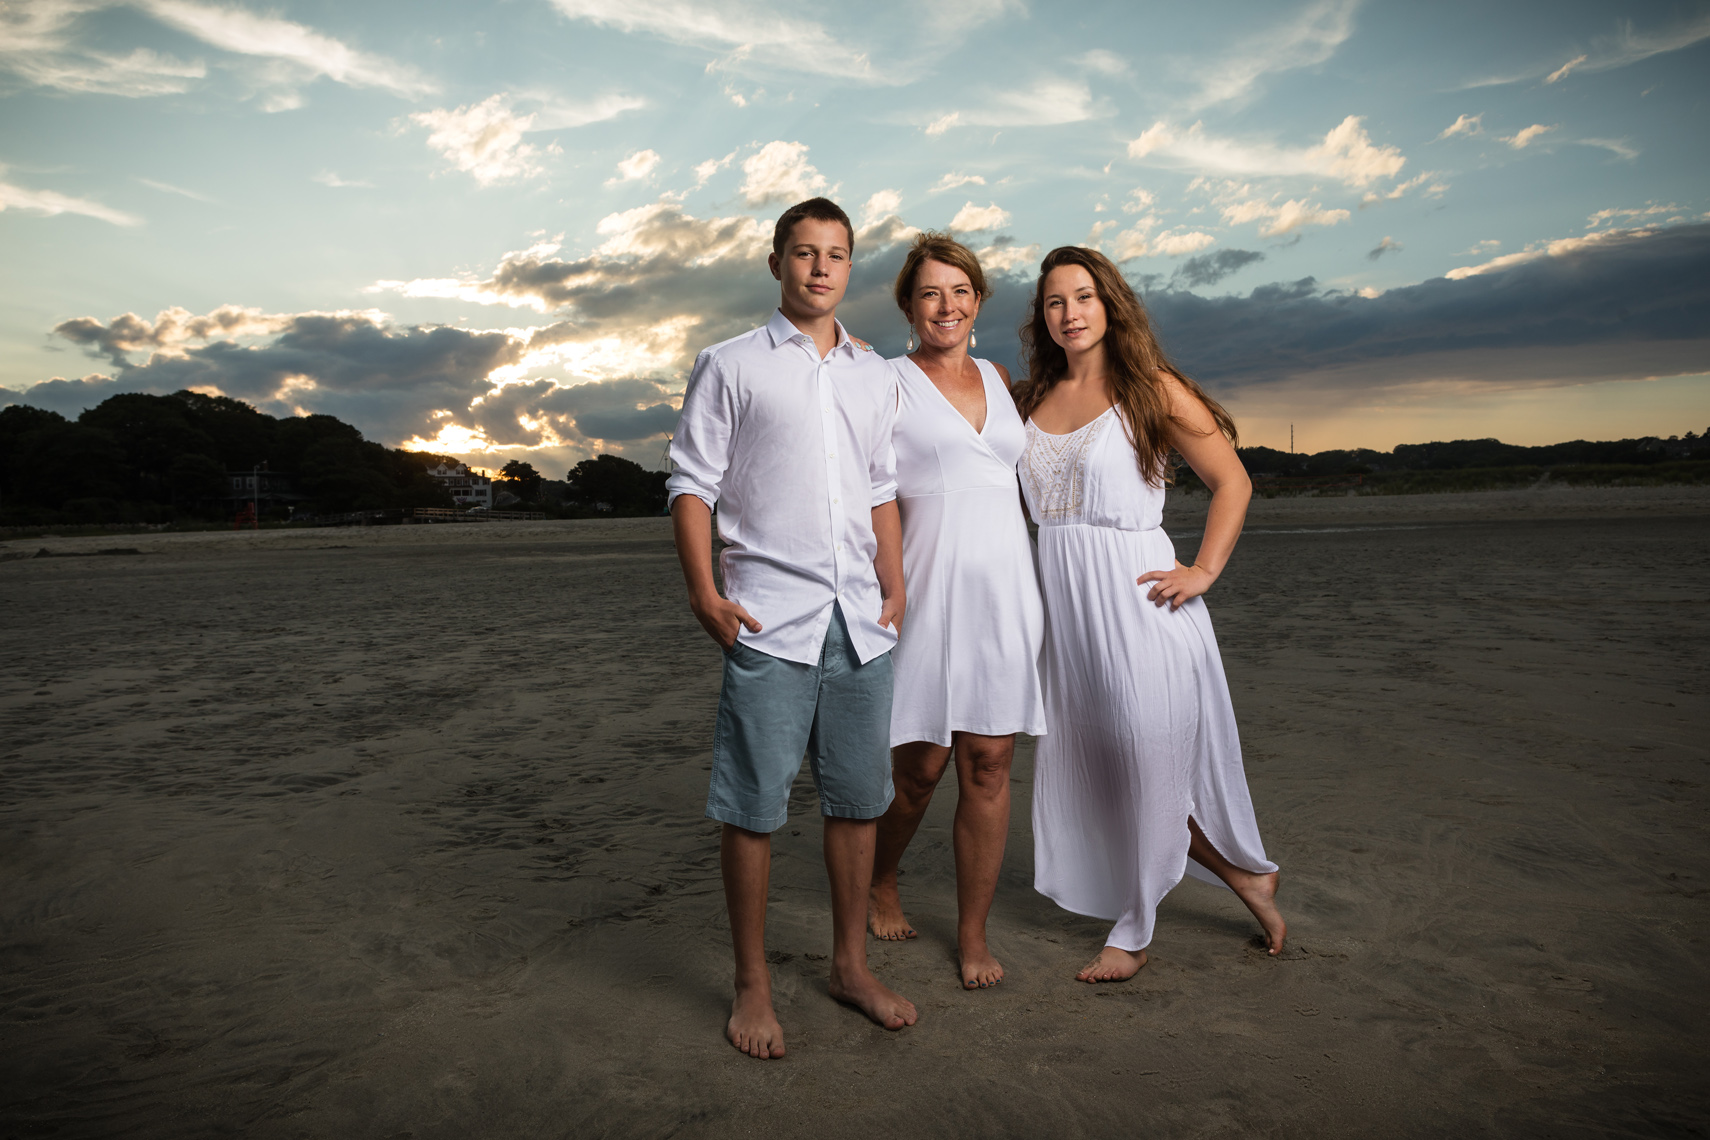 THE ULRICH FAMILY • JASON GROW PHOTOGRAPHY